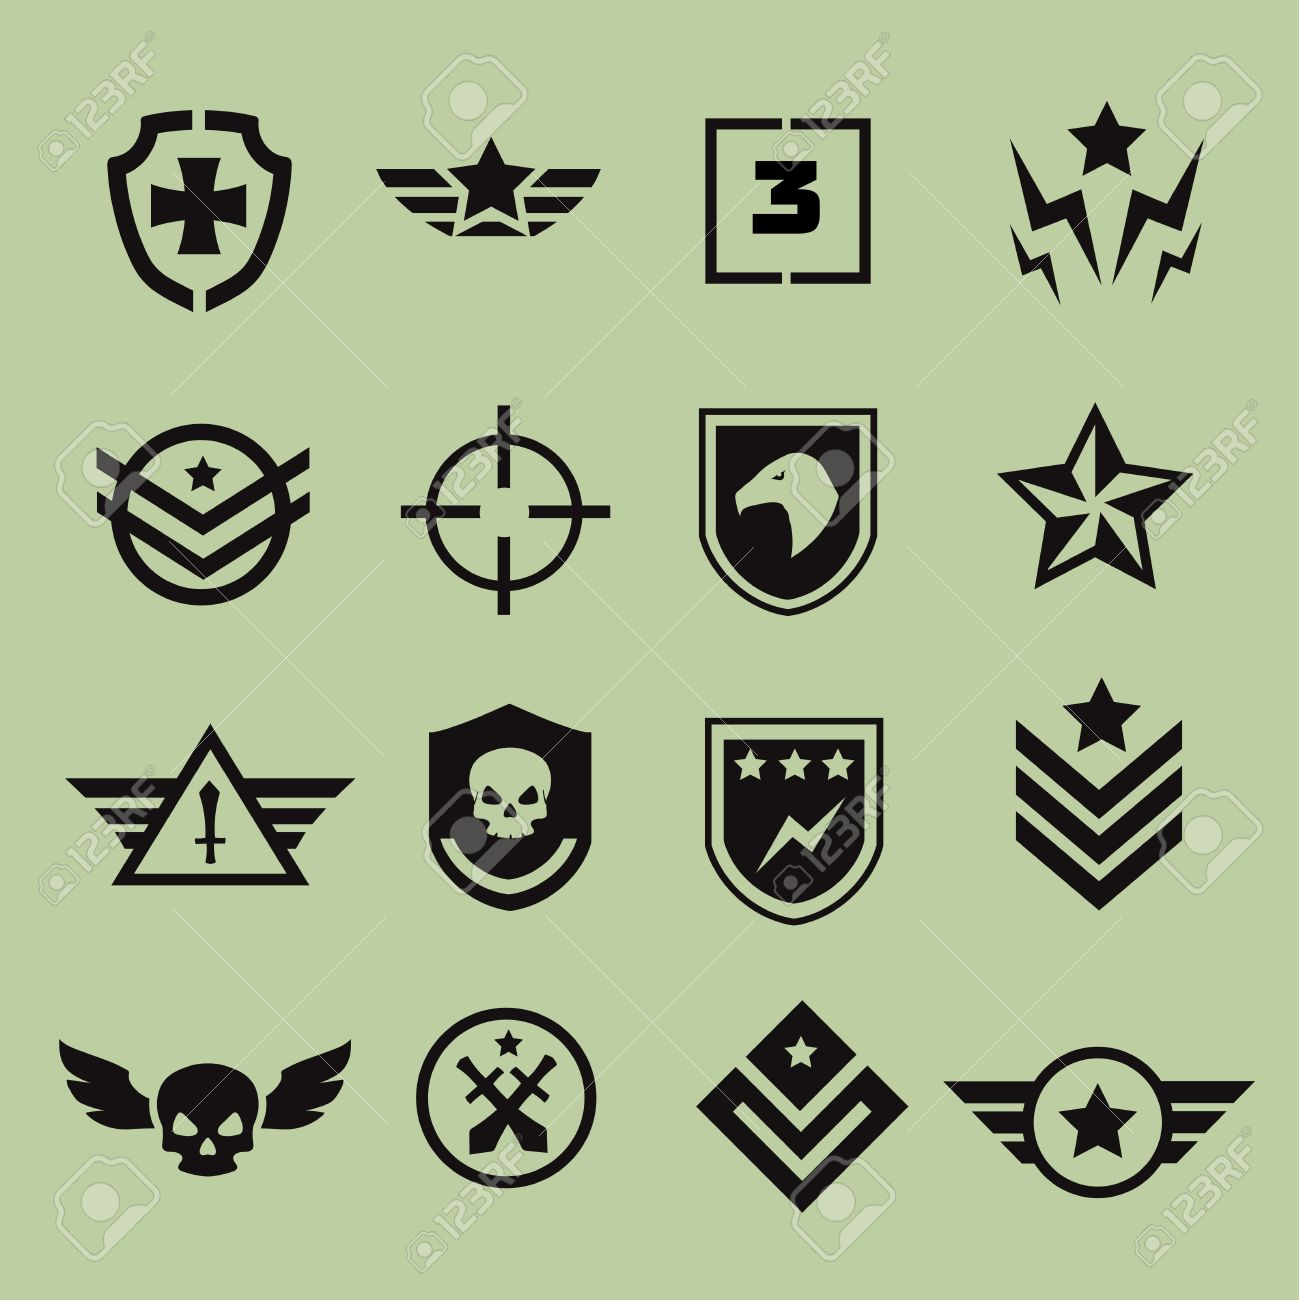 Military symbol army icons black isolated